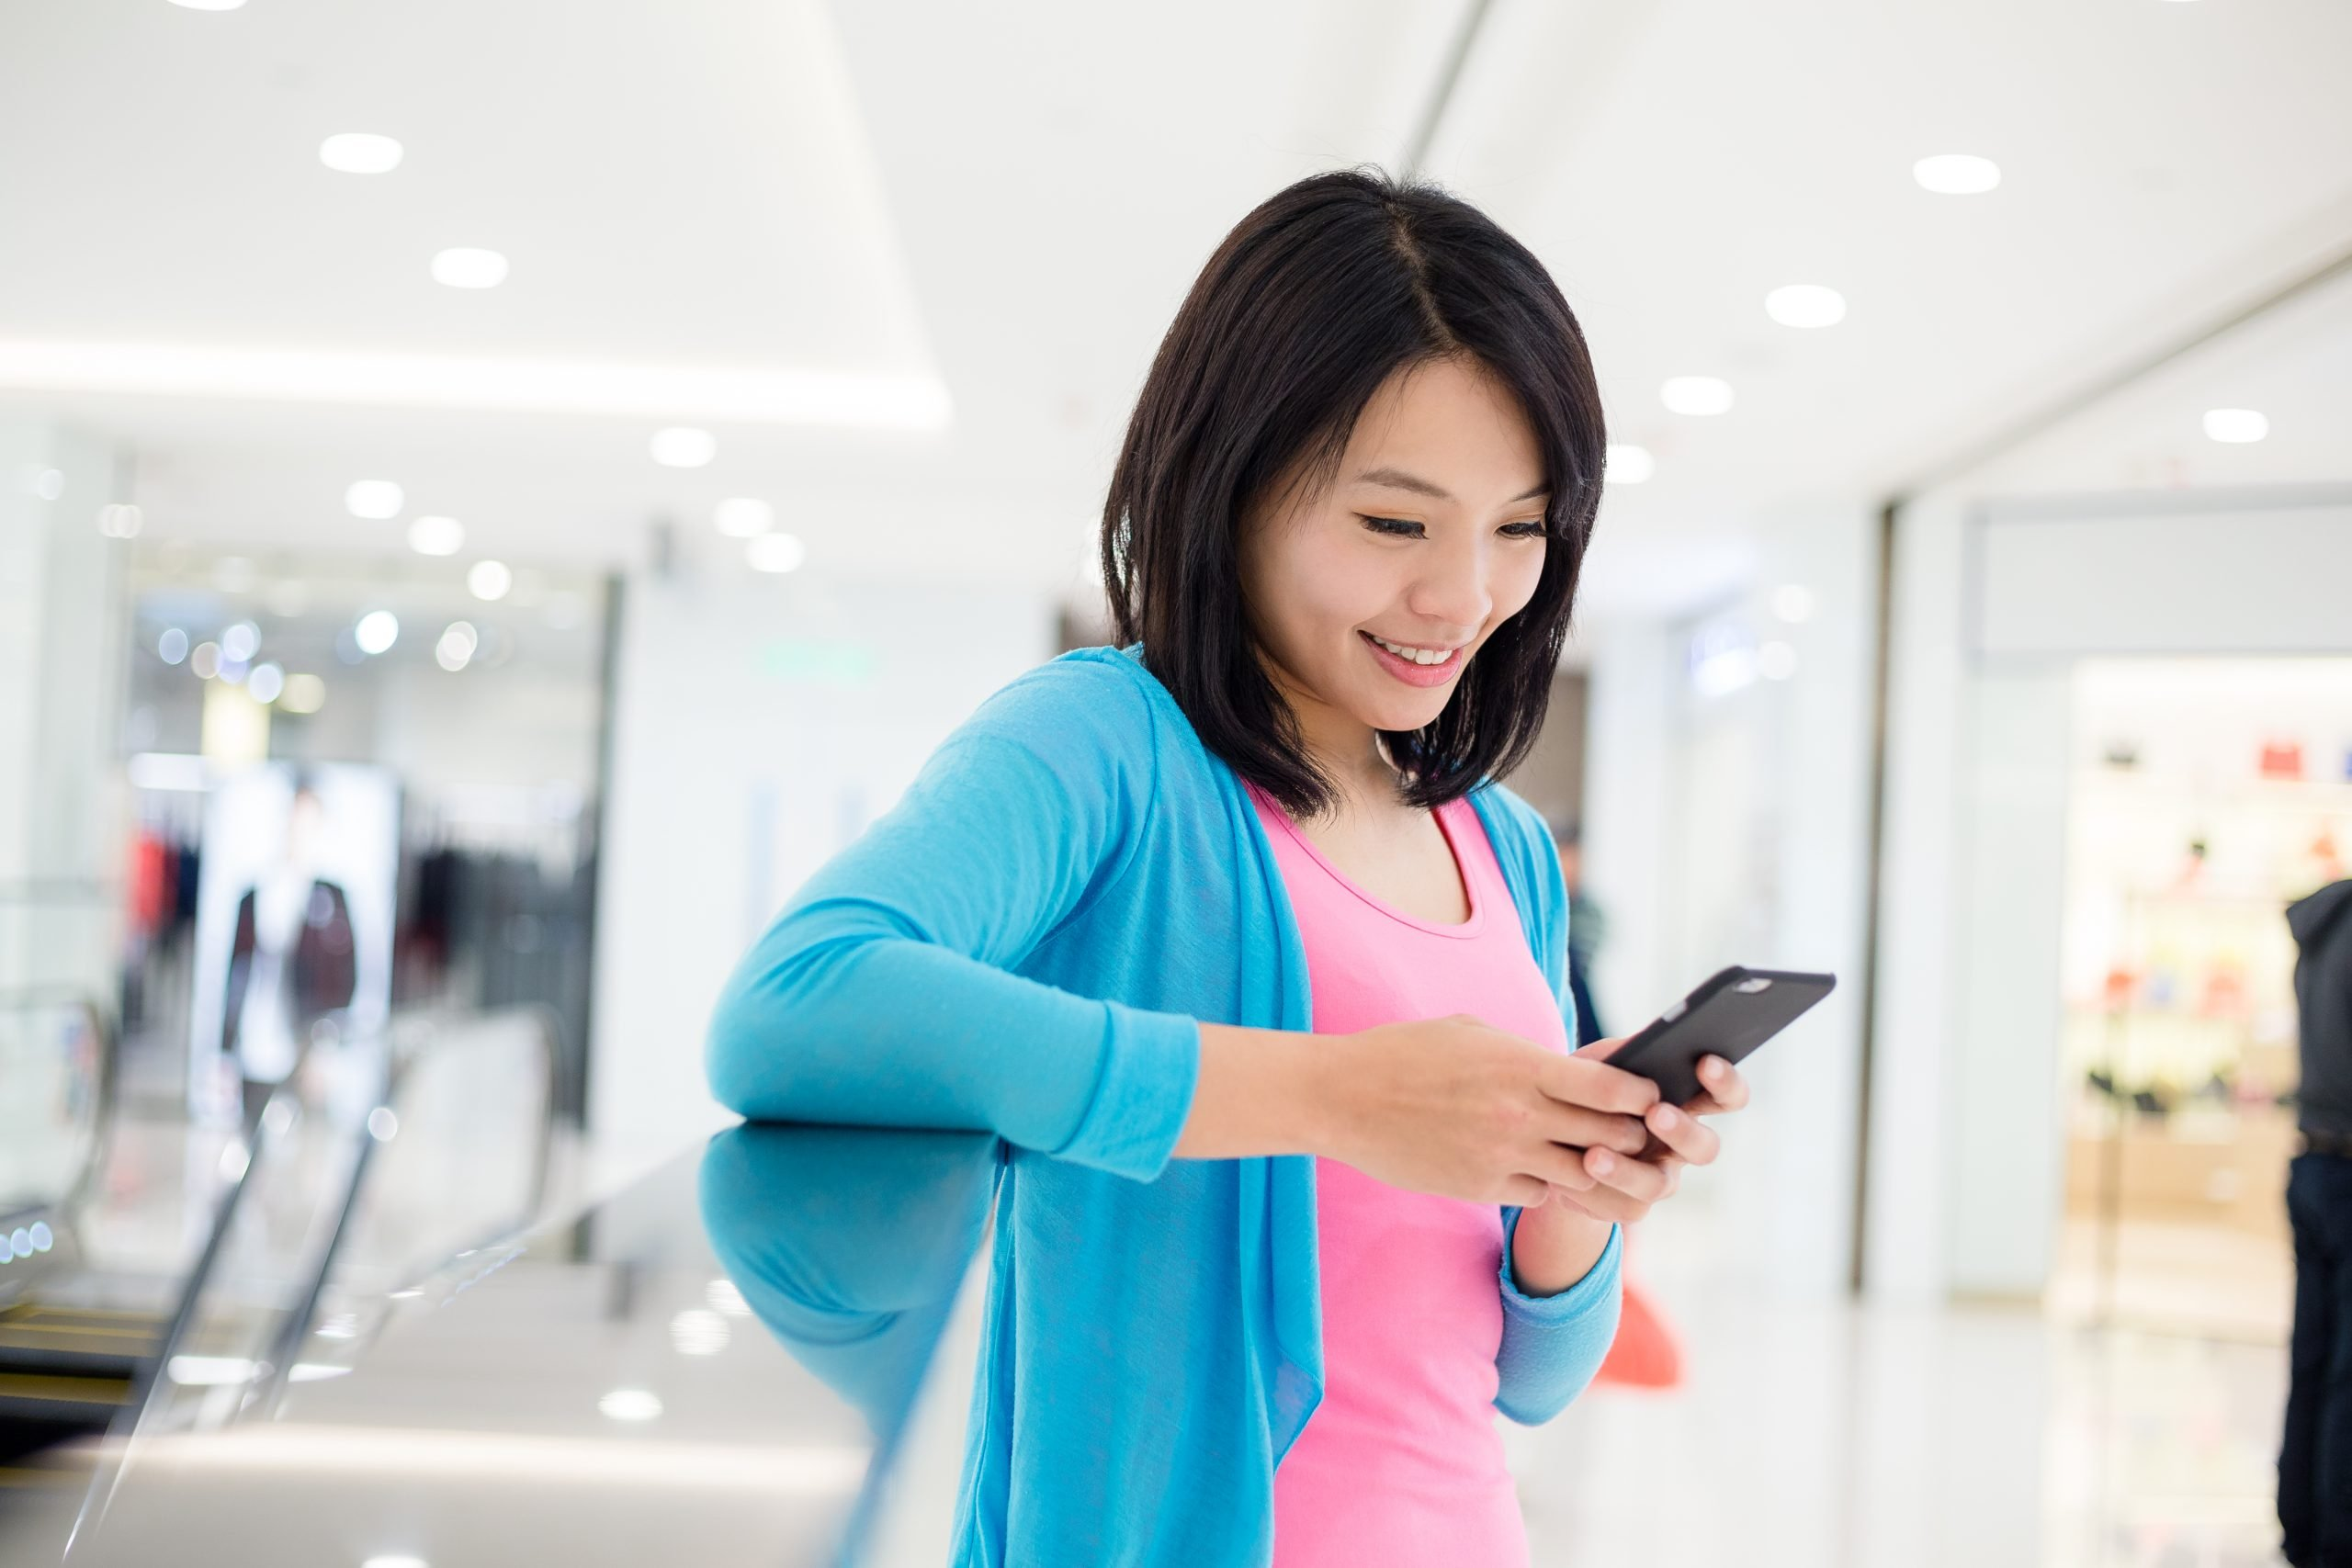 Woman using cellphone inside department store